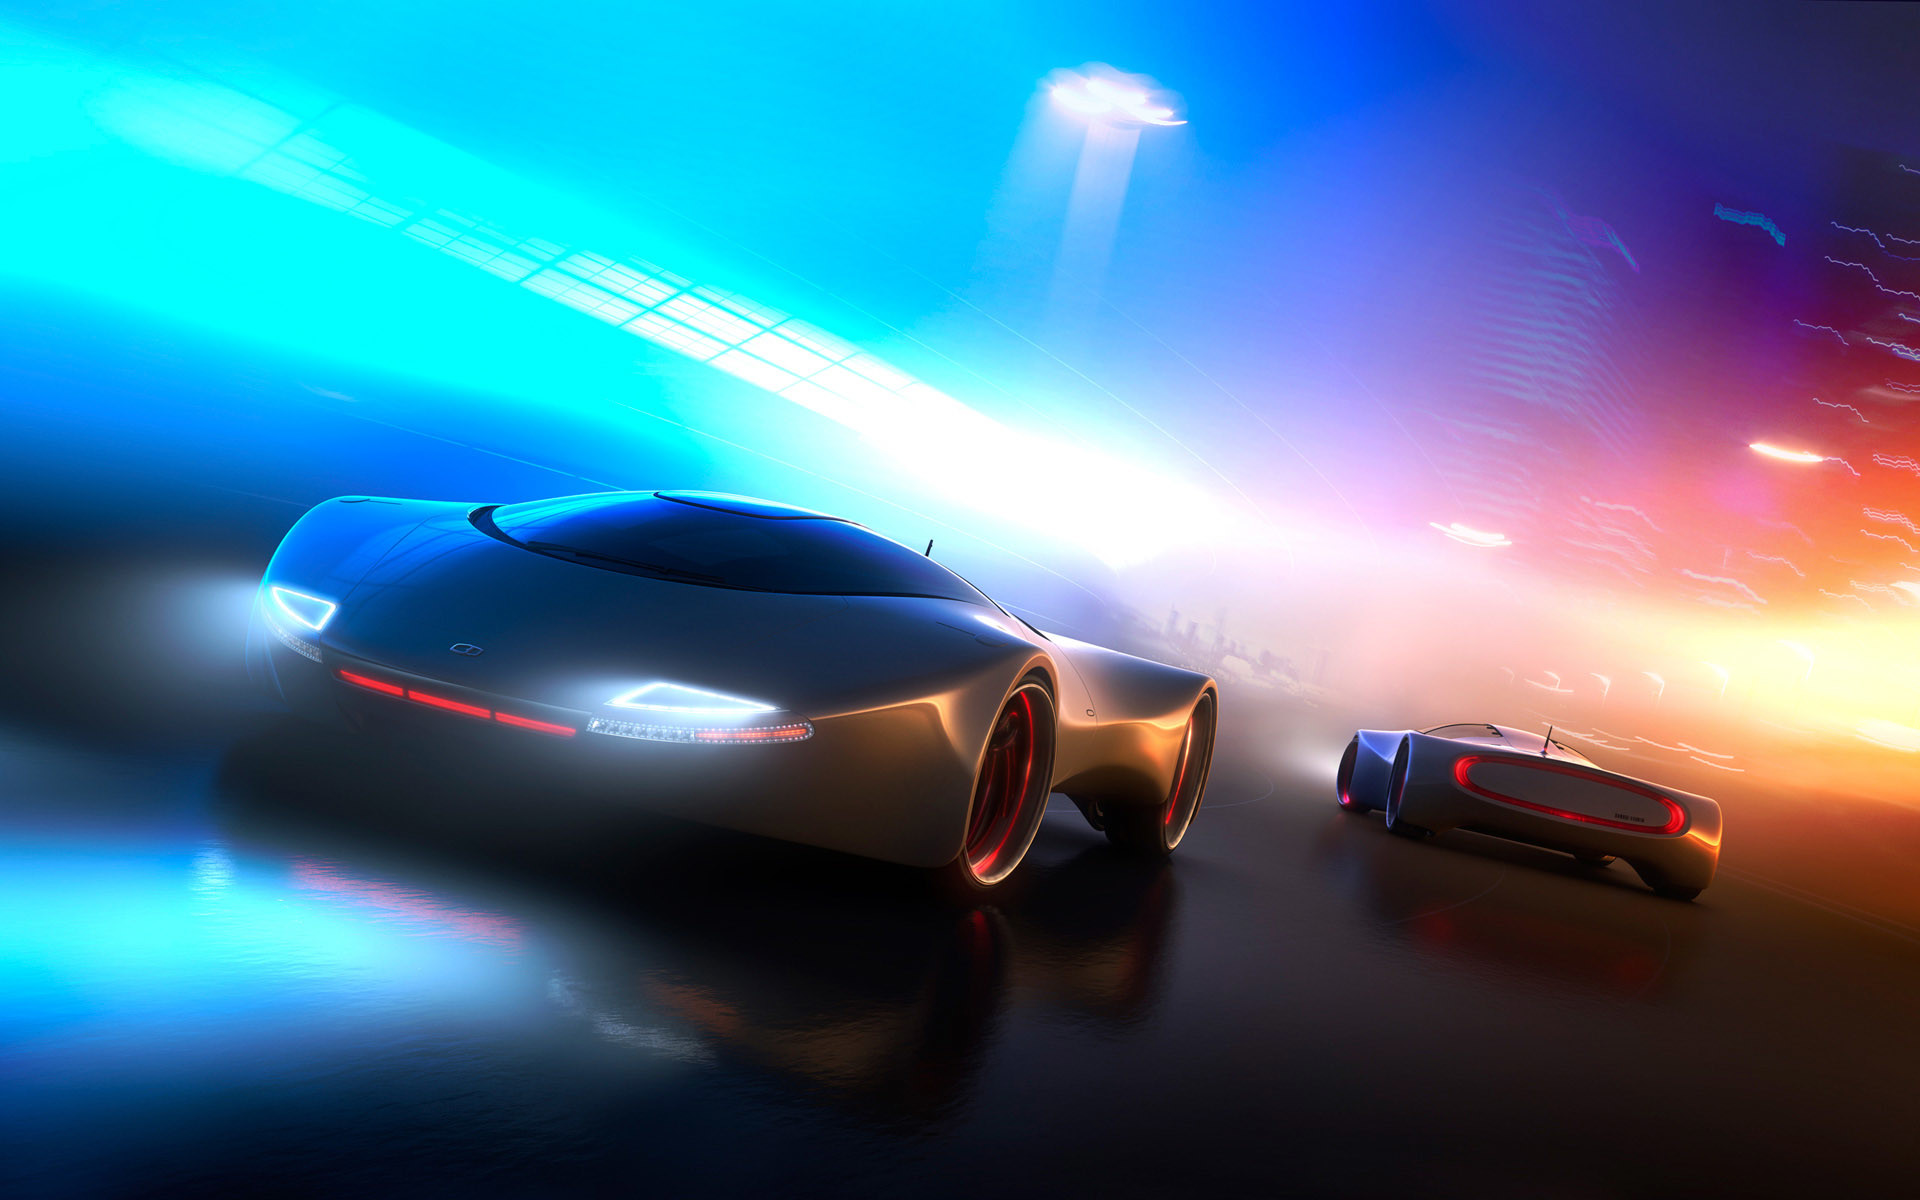 1920x1200 ... wallpapers; stunning future cars images ...